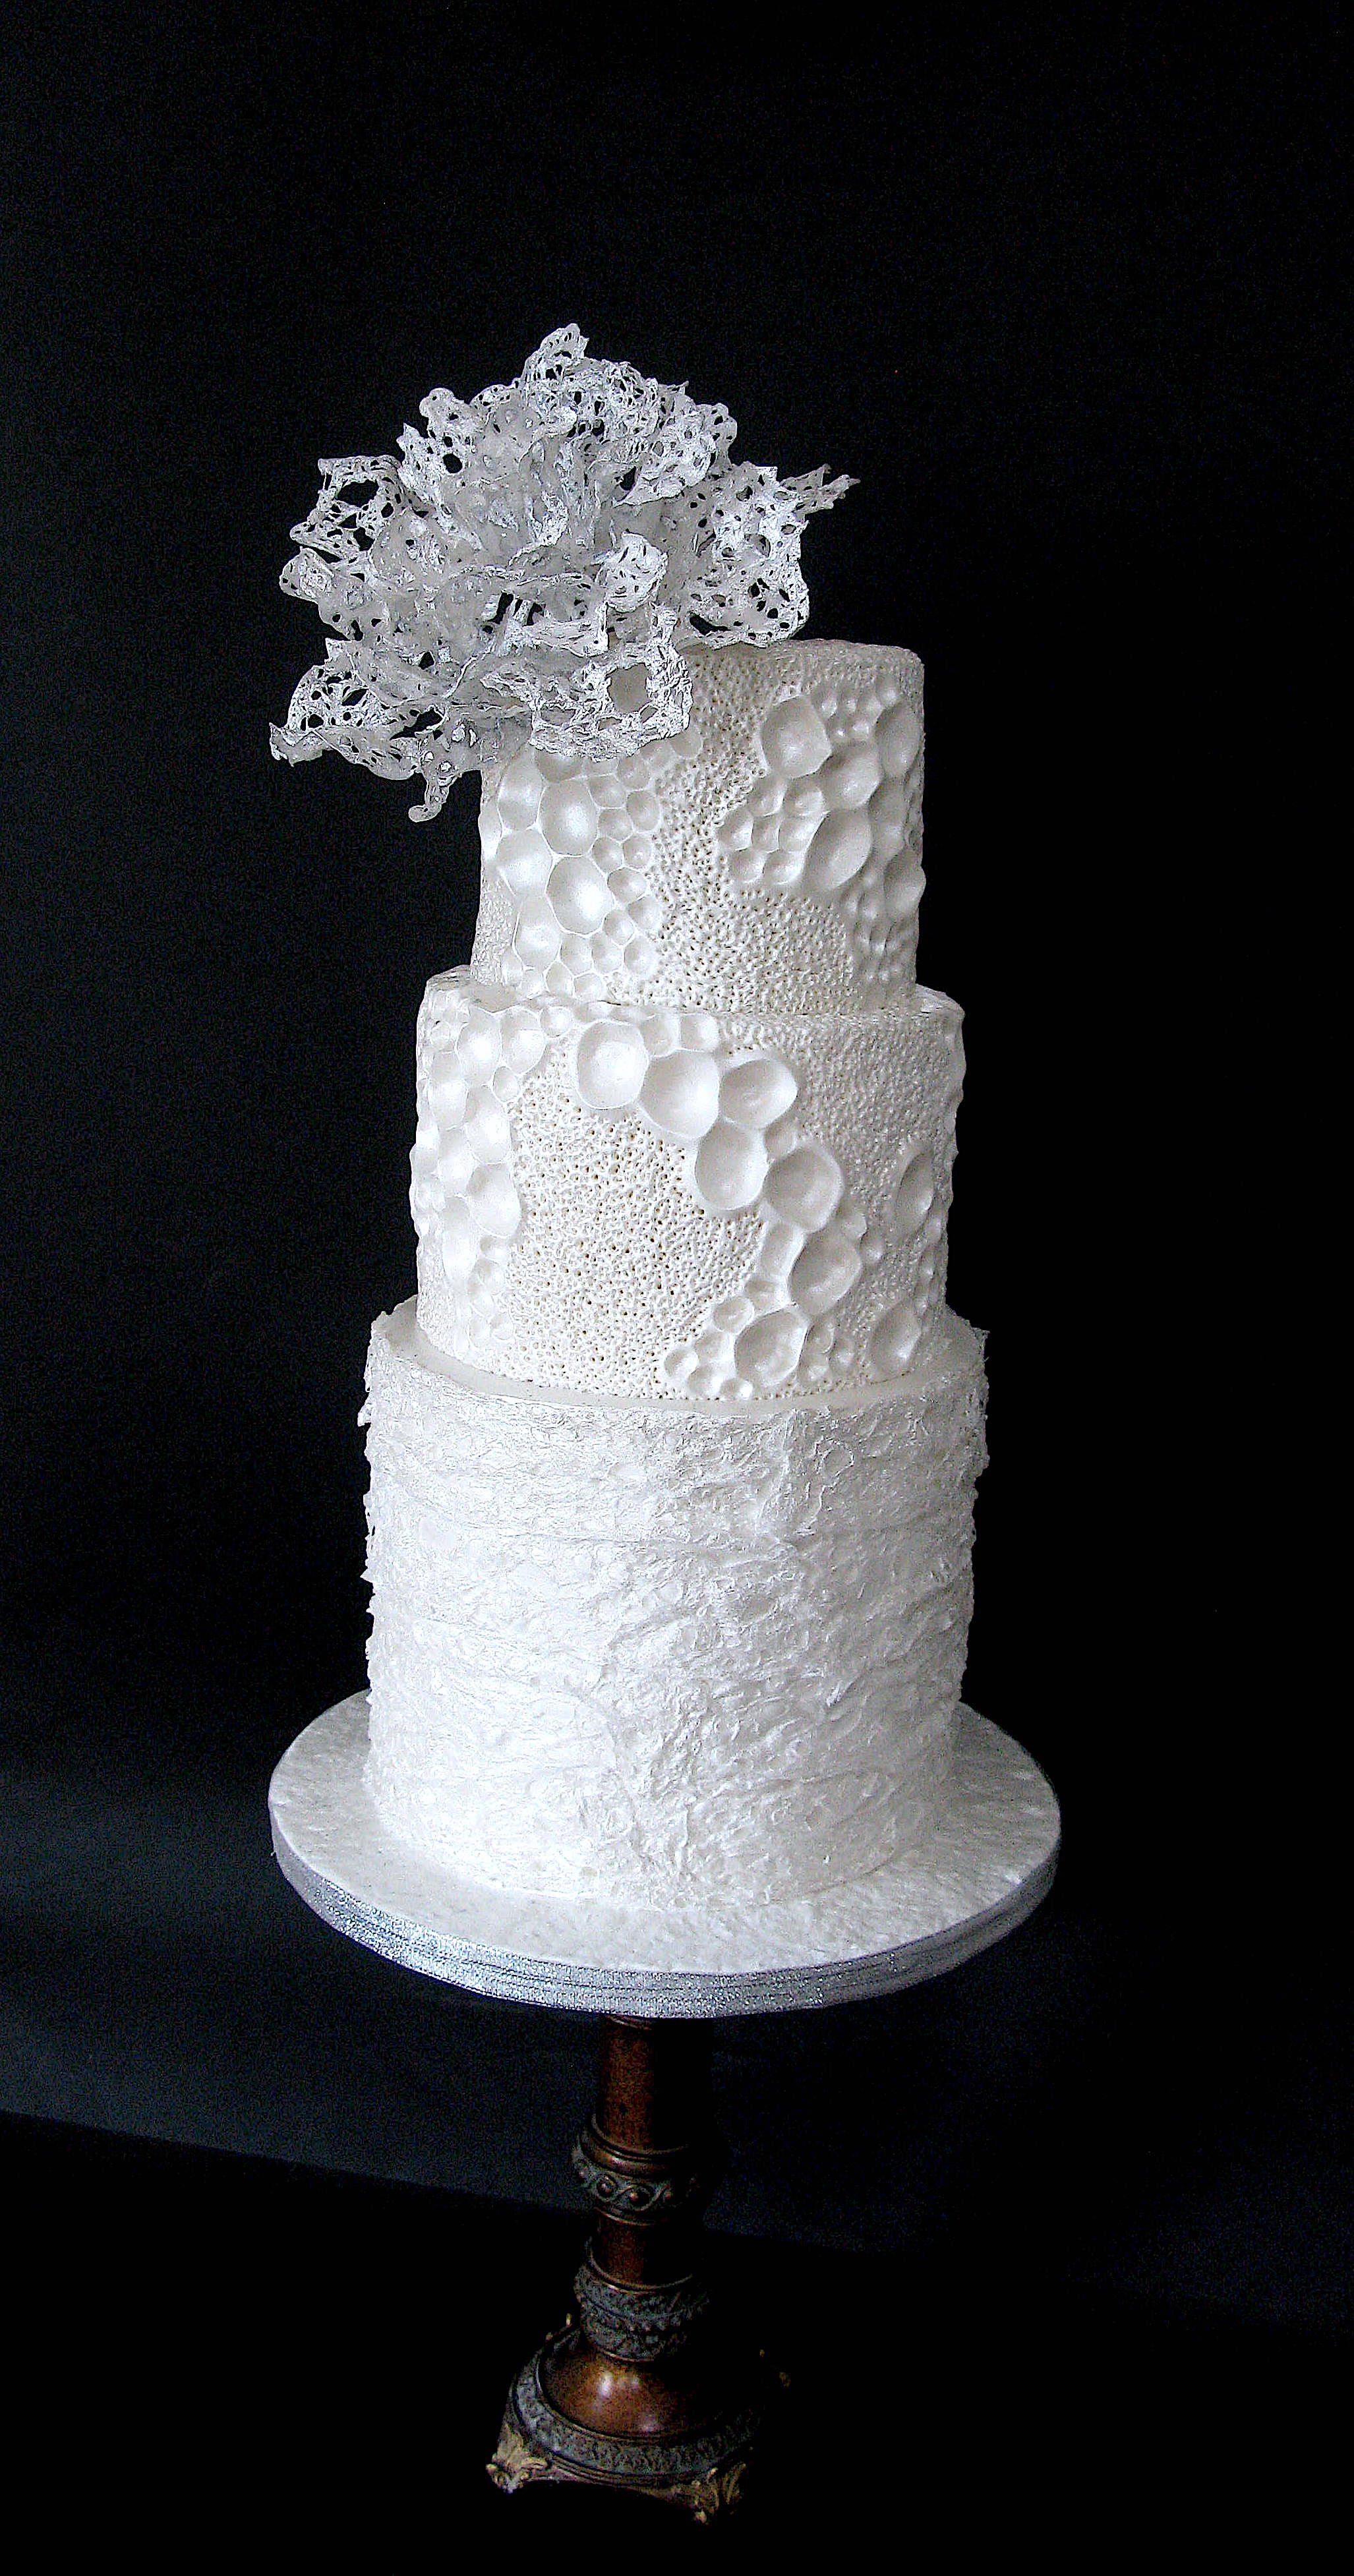 White coral textured cake